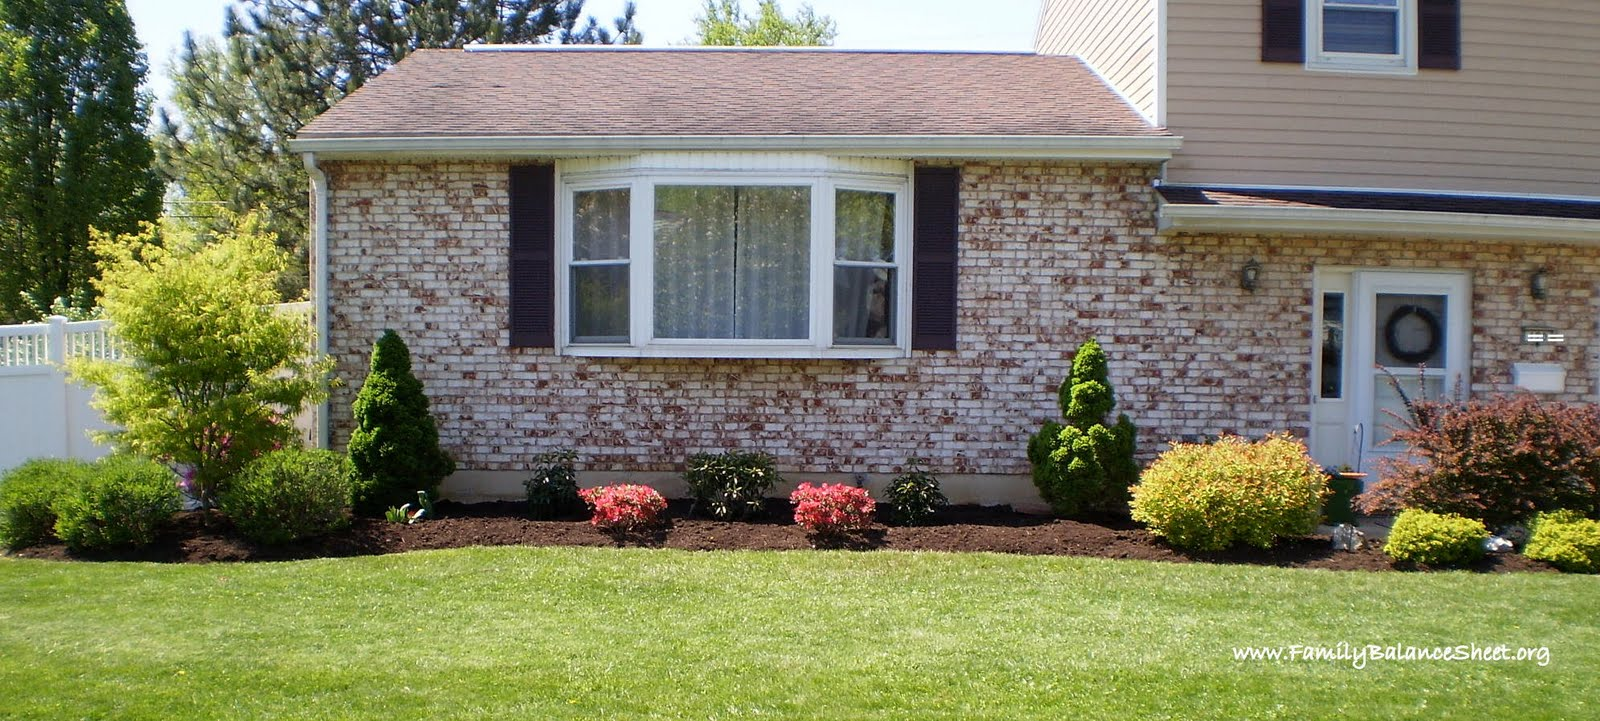 15 tips to help you design your front yard save money too for Landscape design help